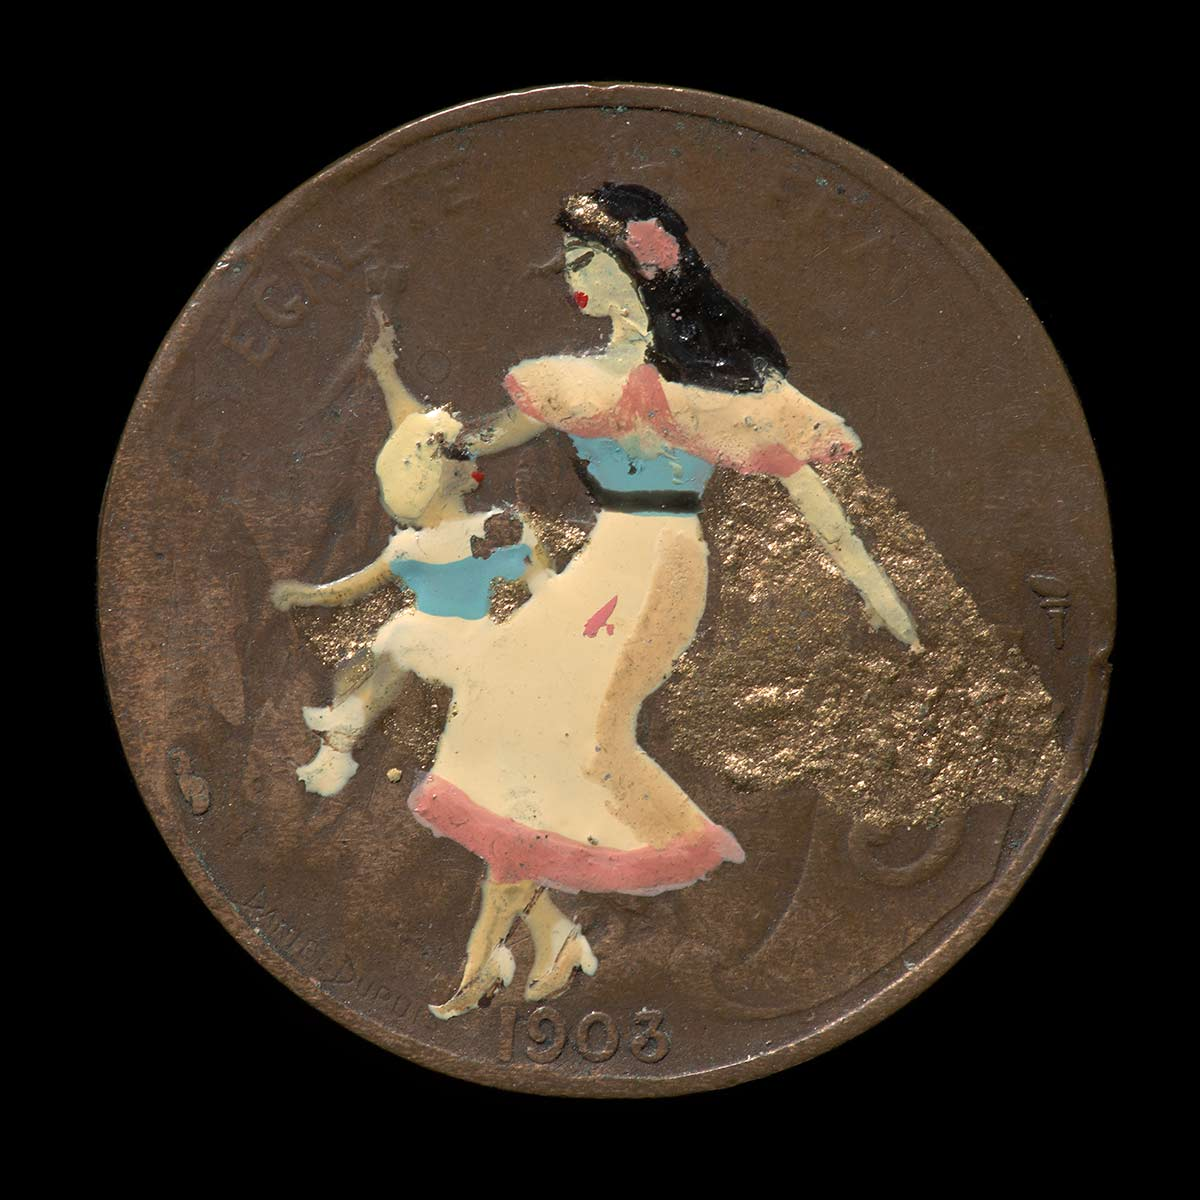 A circular, hand painted copper coloured metal coin. One face is overpainted with a woman with long black hair wearing a blue, pink and white dress, and a gold cape. A child with white hair is seated on her knee and is wearing a blue and white dress. - click to view larger image